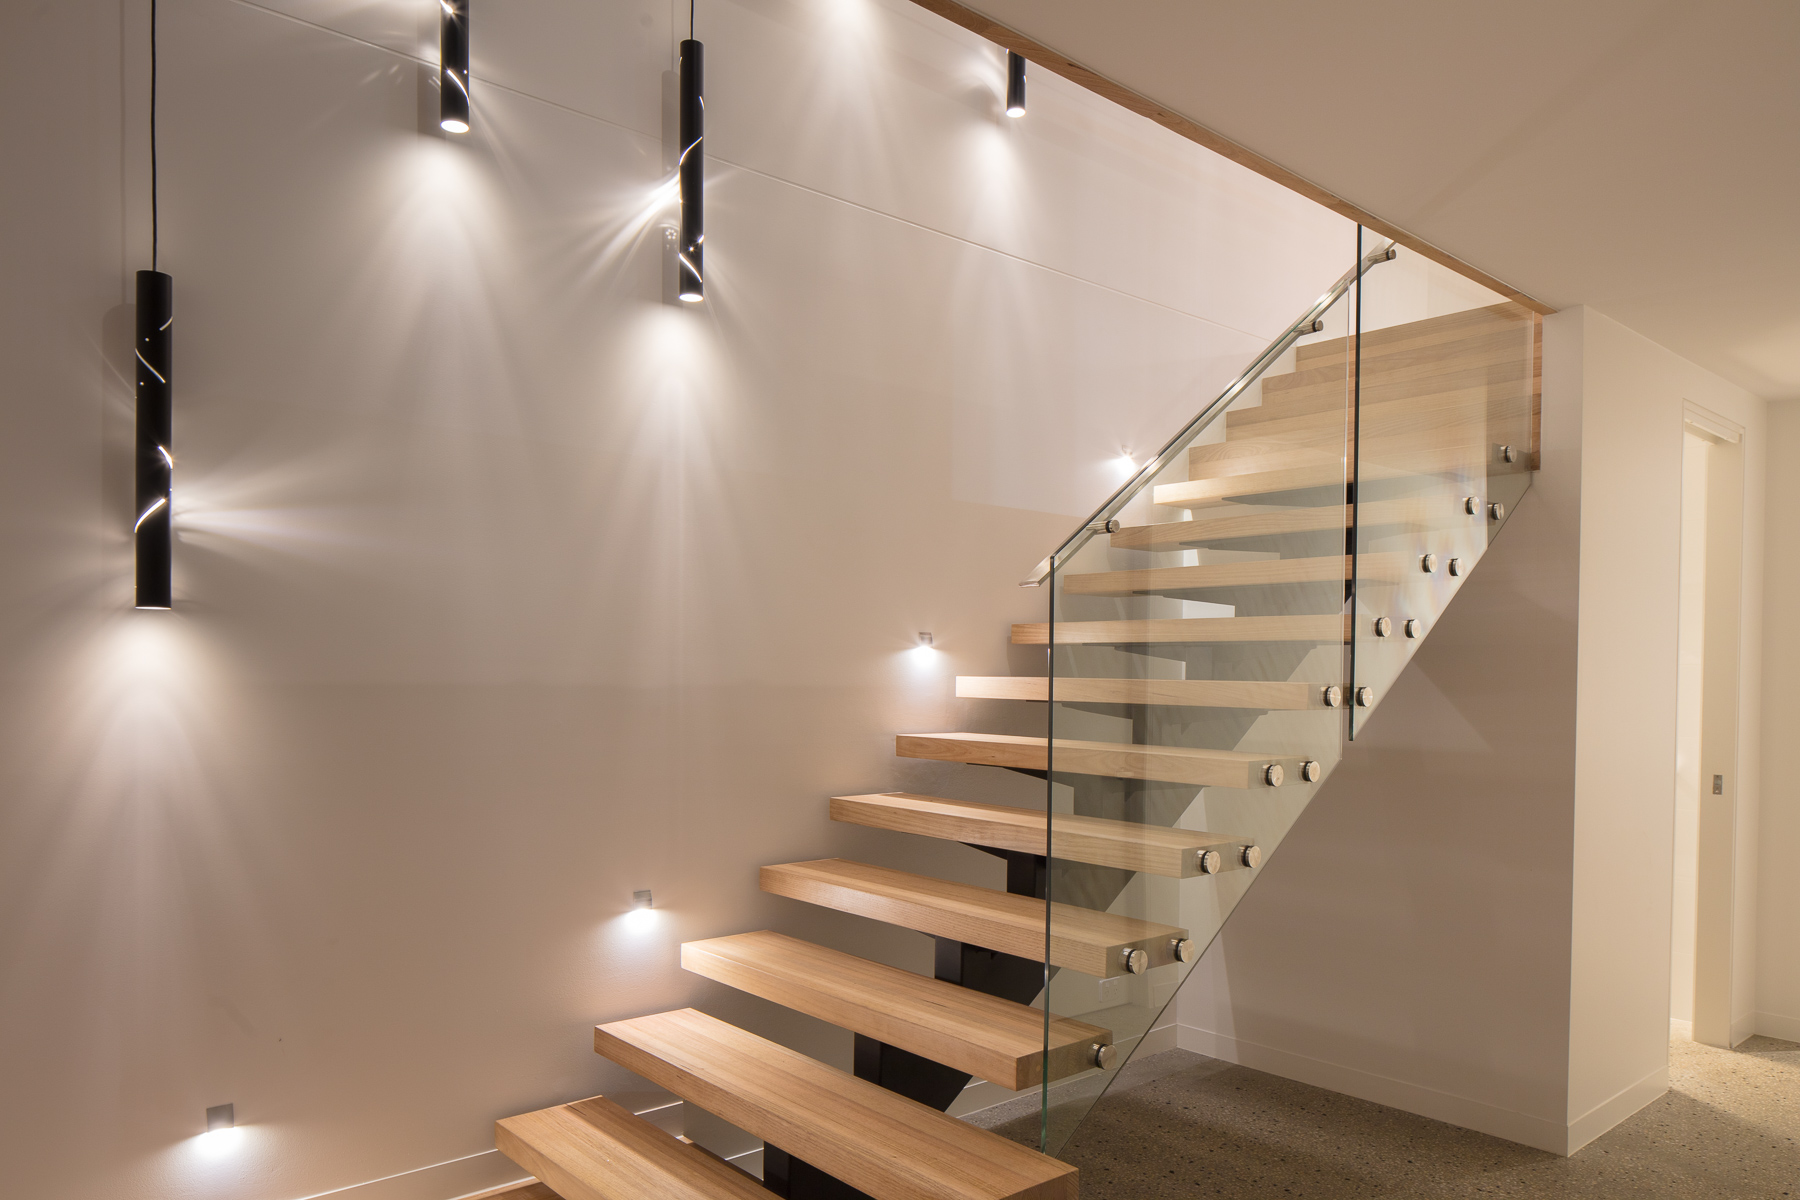 Lighting Basement Washroom Stairs: Creative Ways To Light Your Stairs